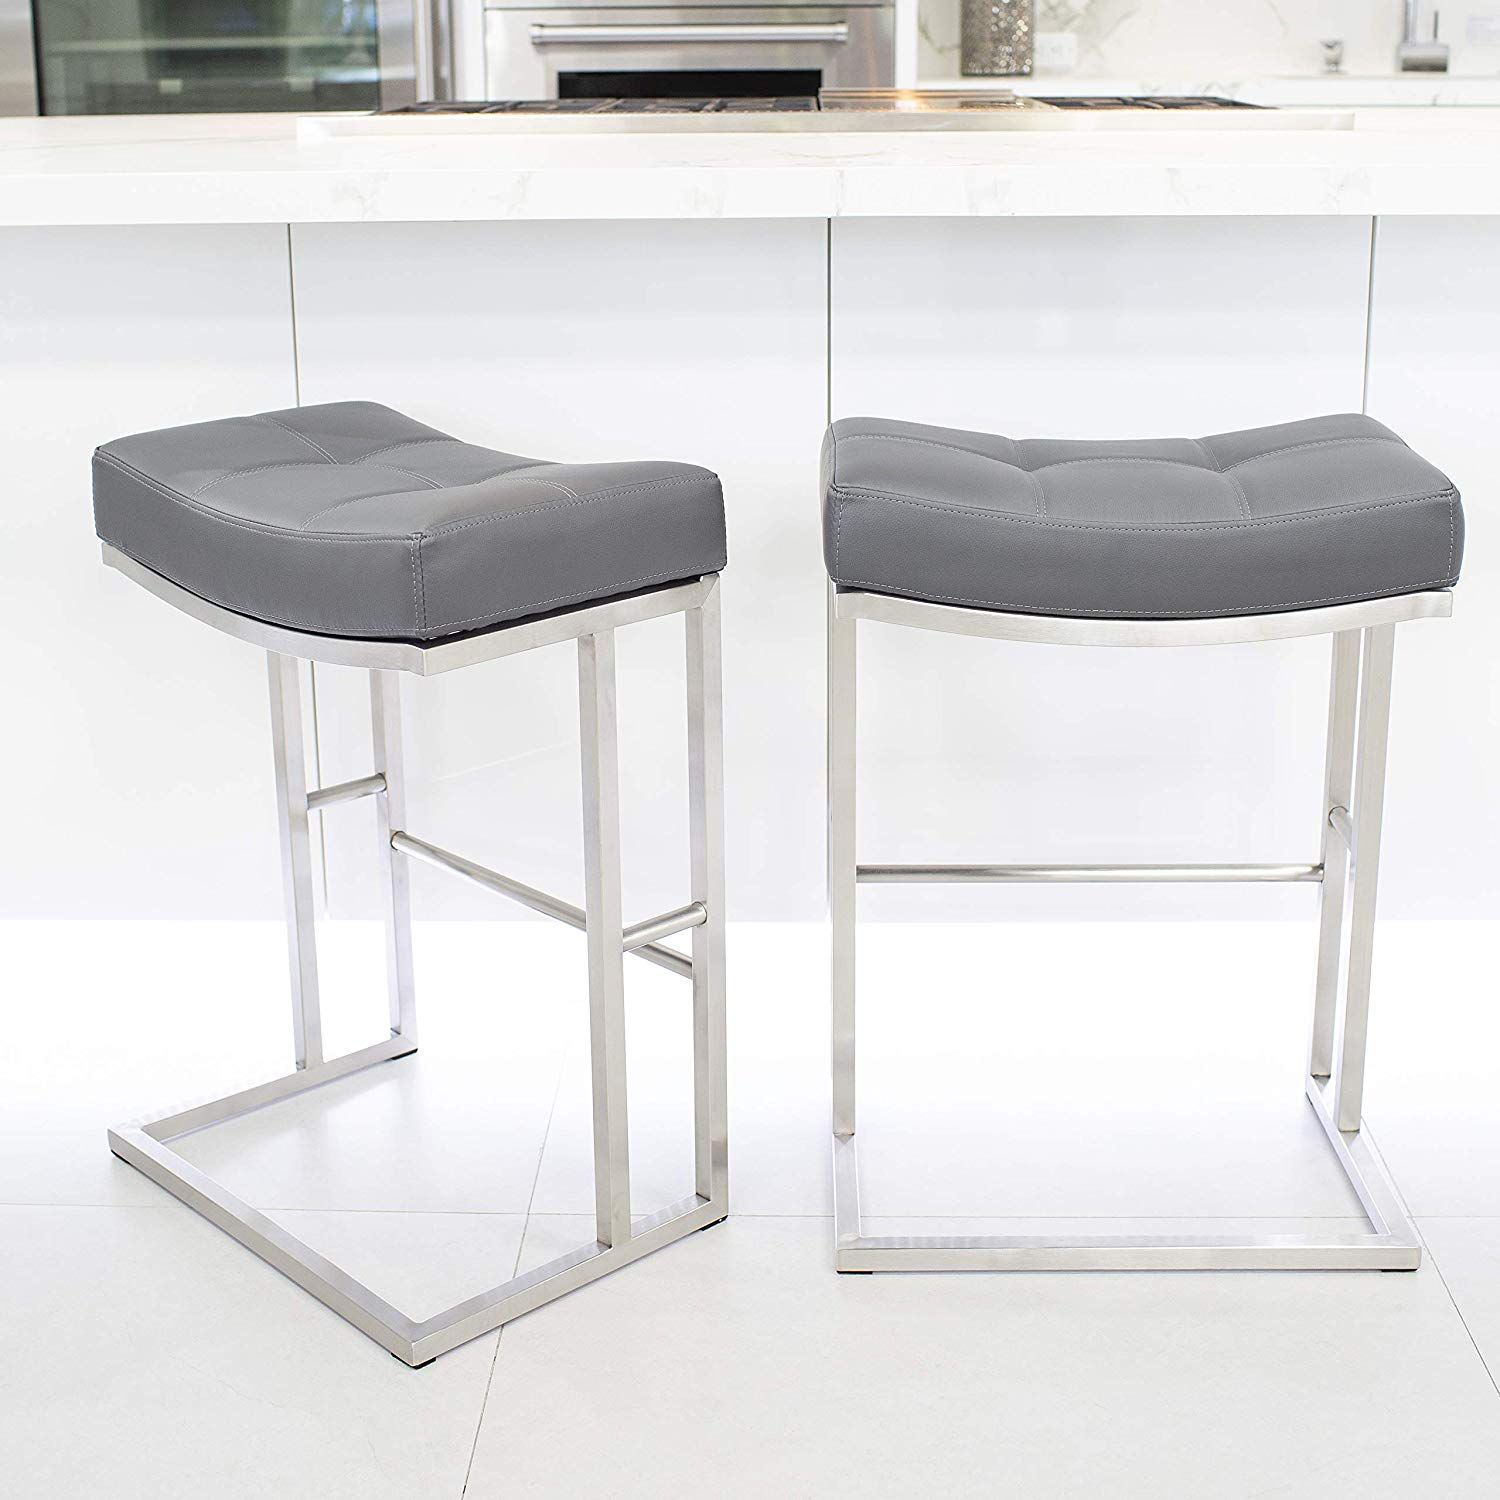 Mix Brushed Stainless Steel Faux Leather Grey 26 Inch Seat Height